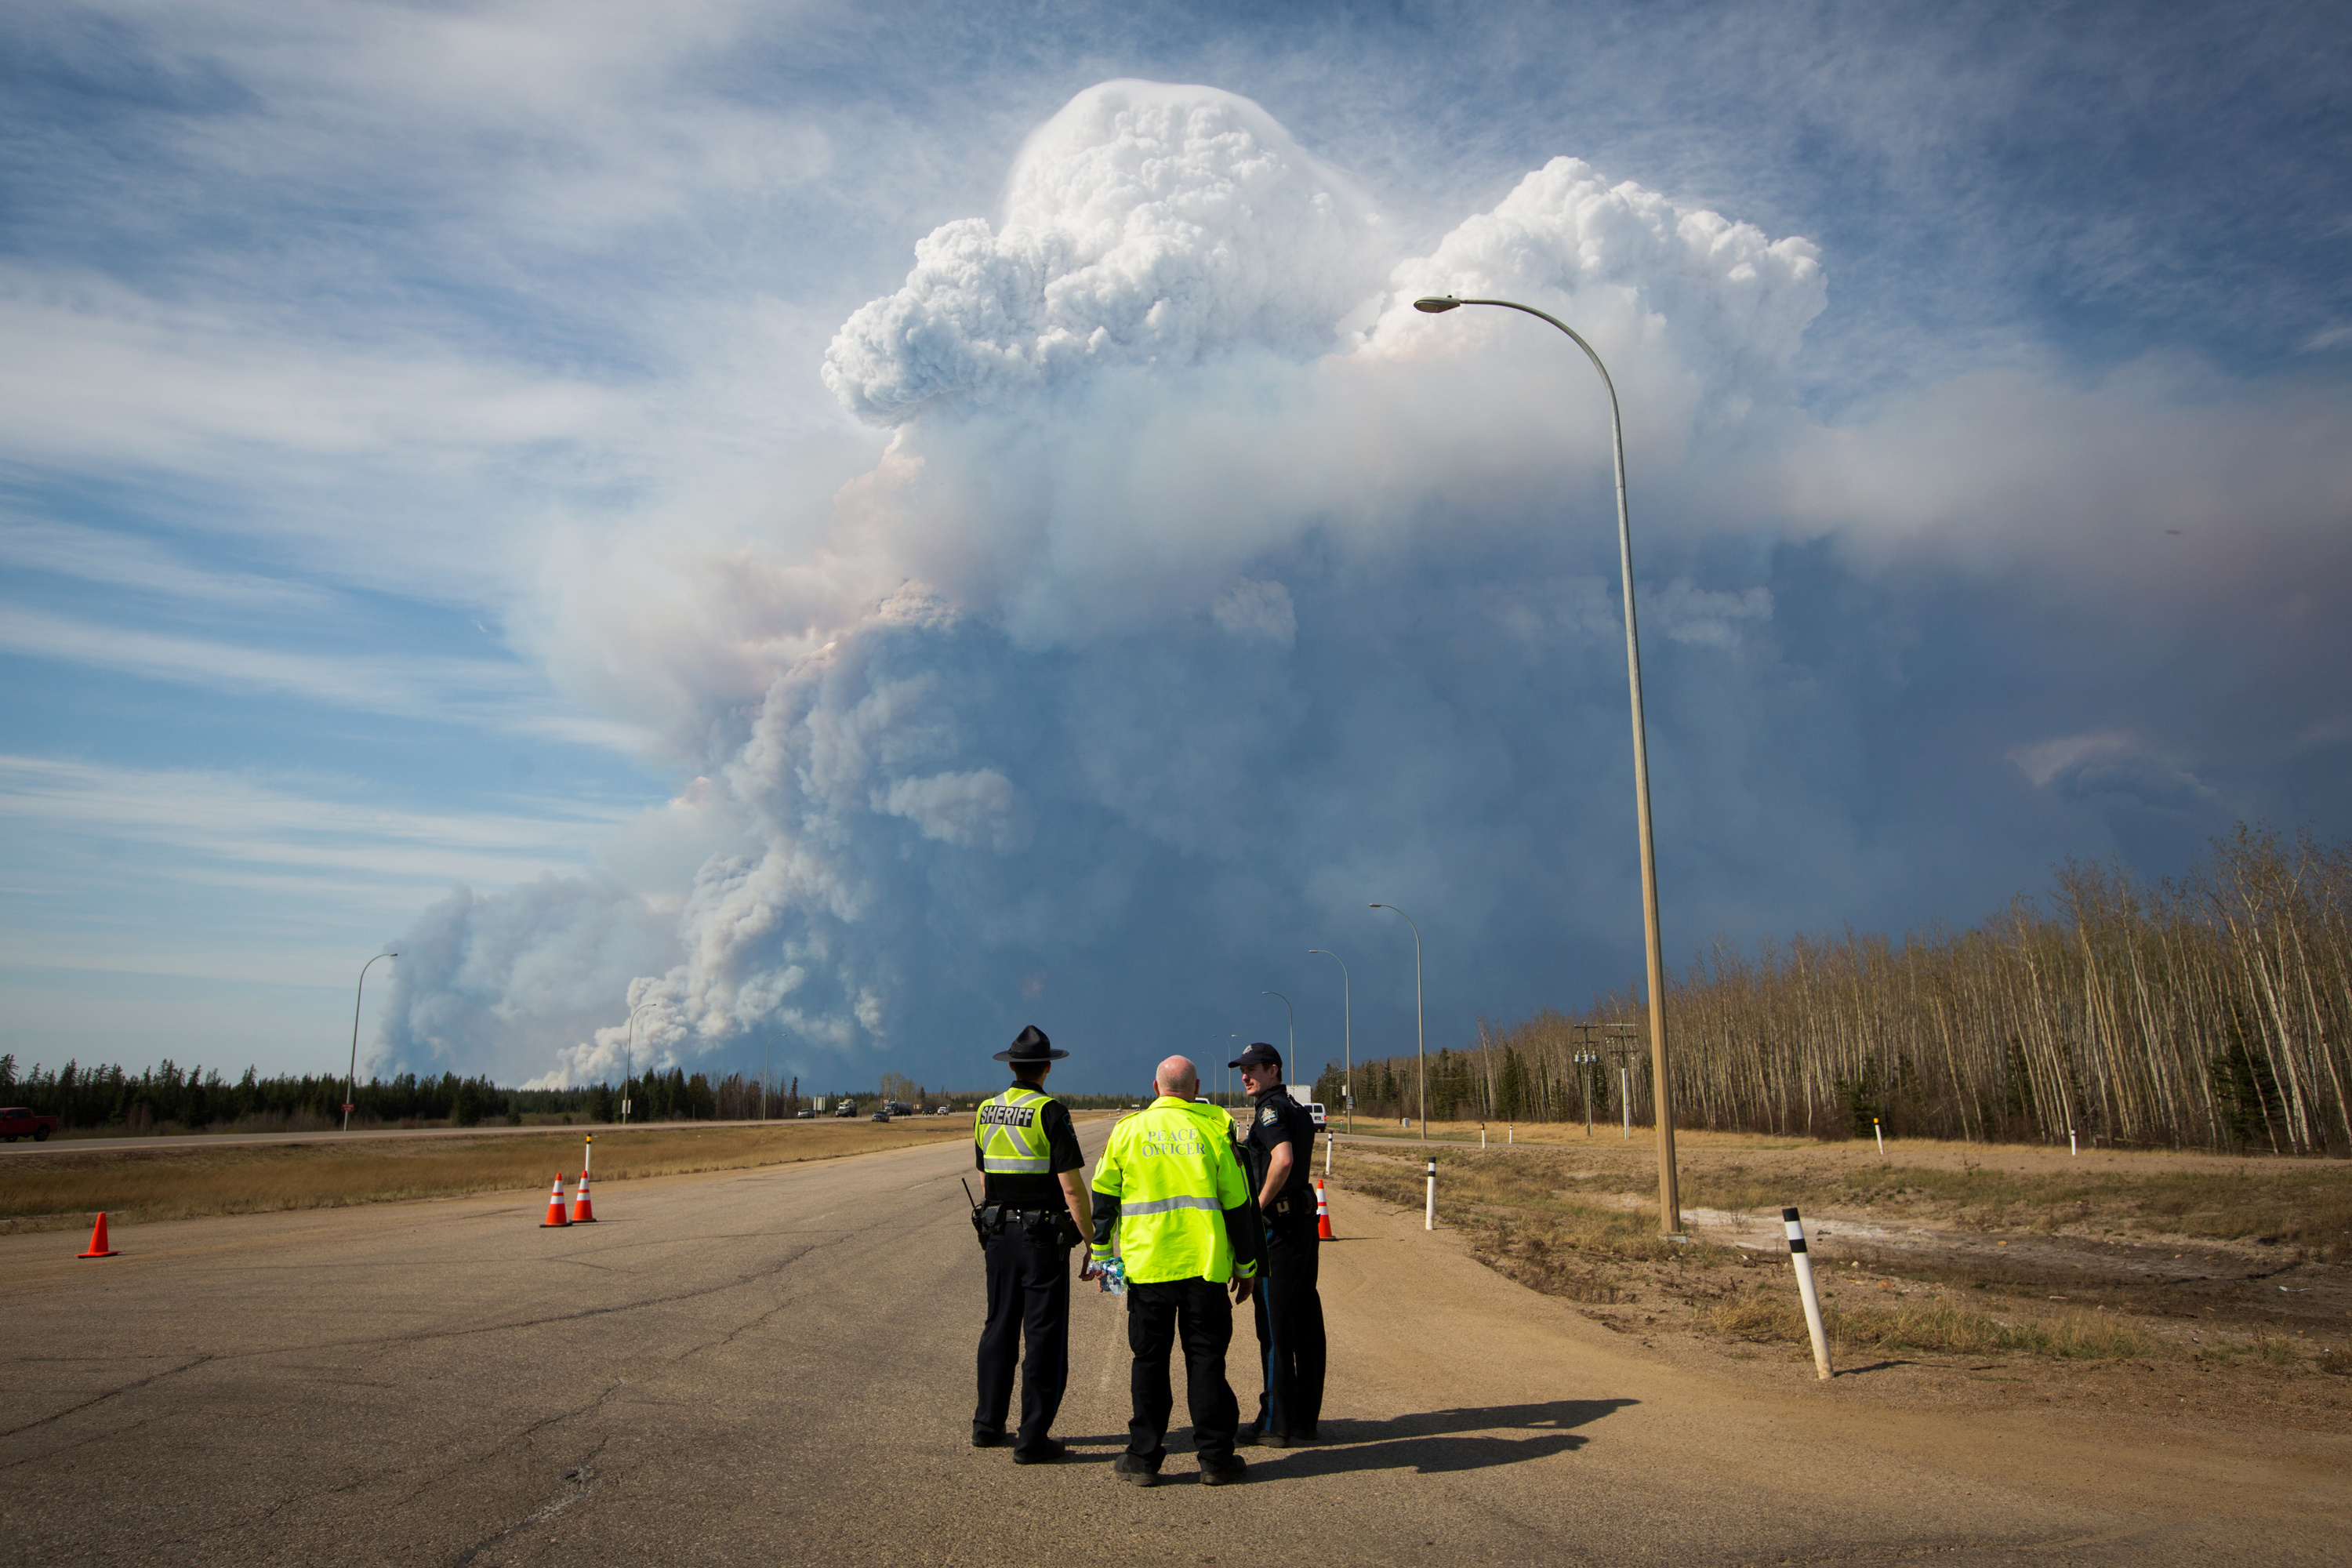 Officers look on as smoke from Fort McMurray's raging wildfires billow into the air after their city was evacuated